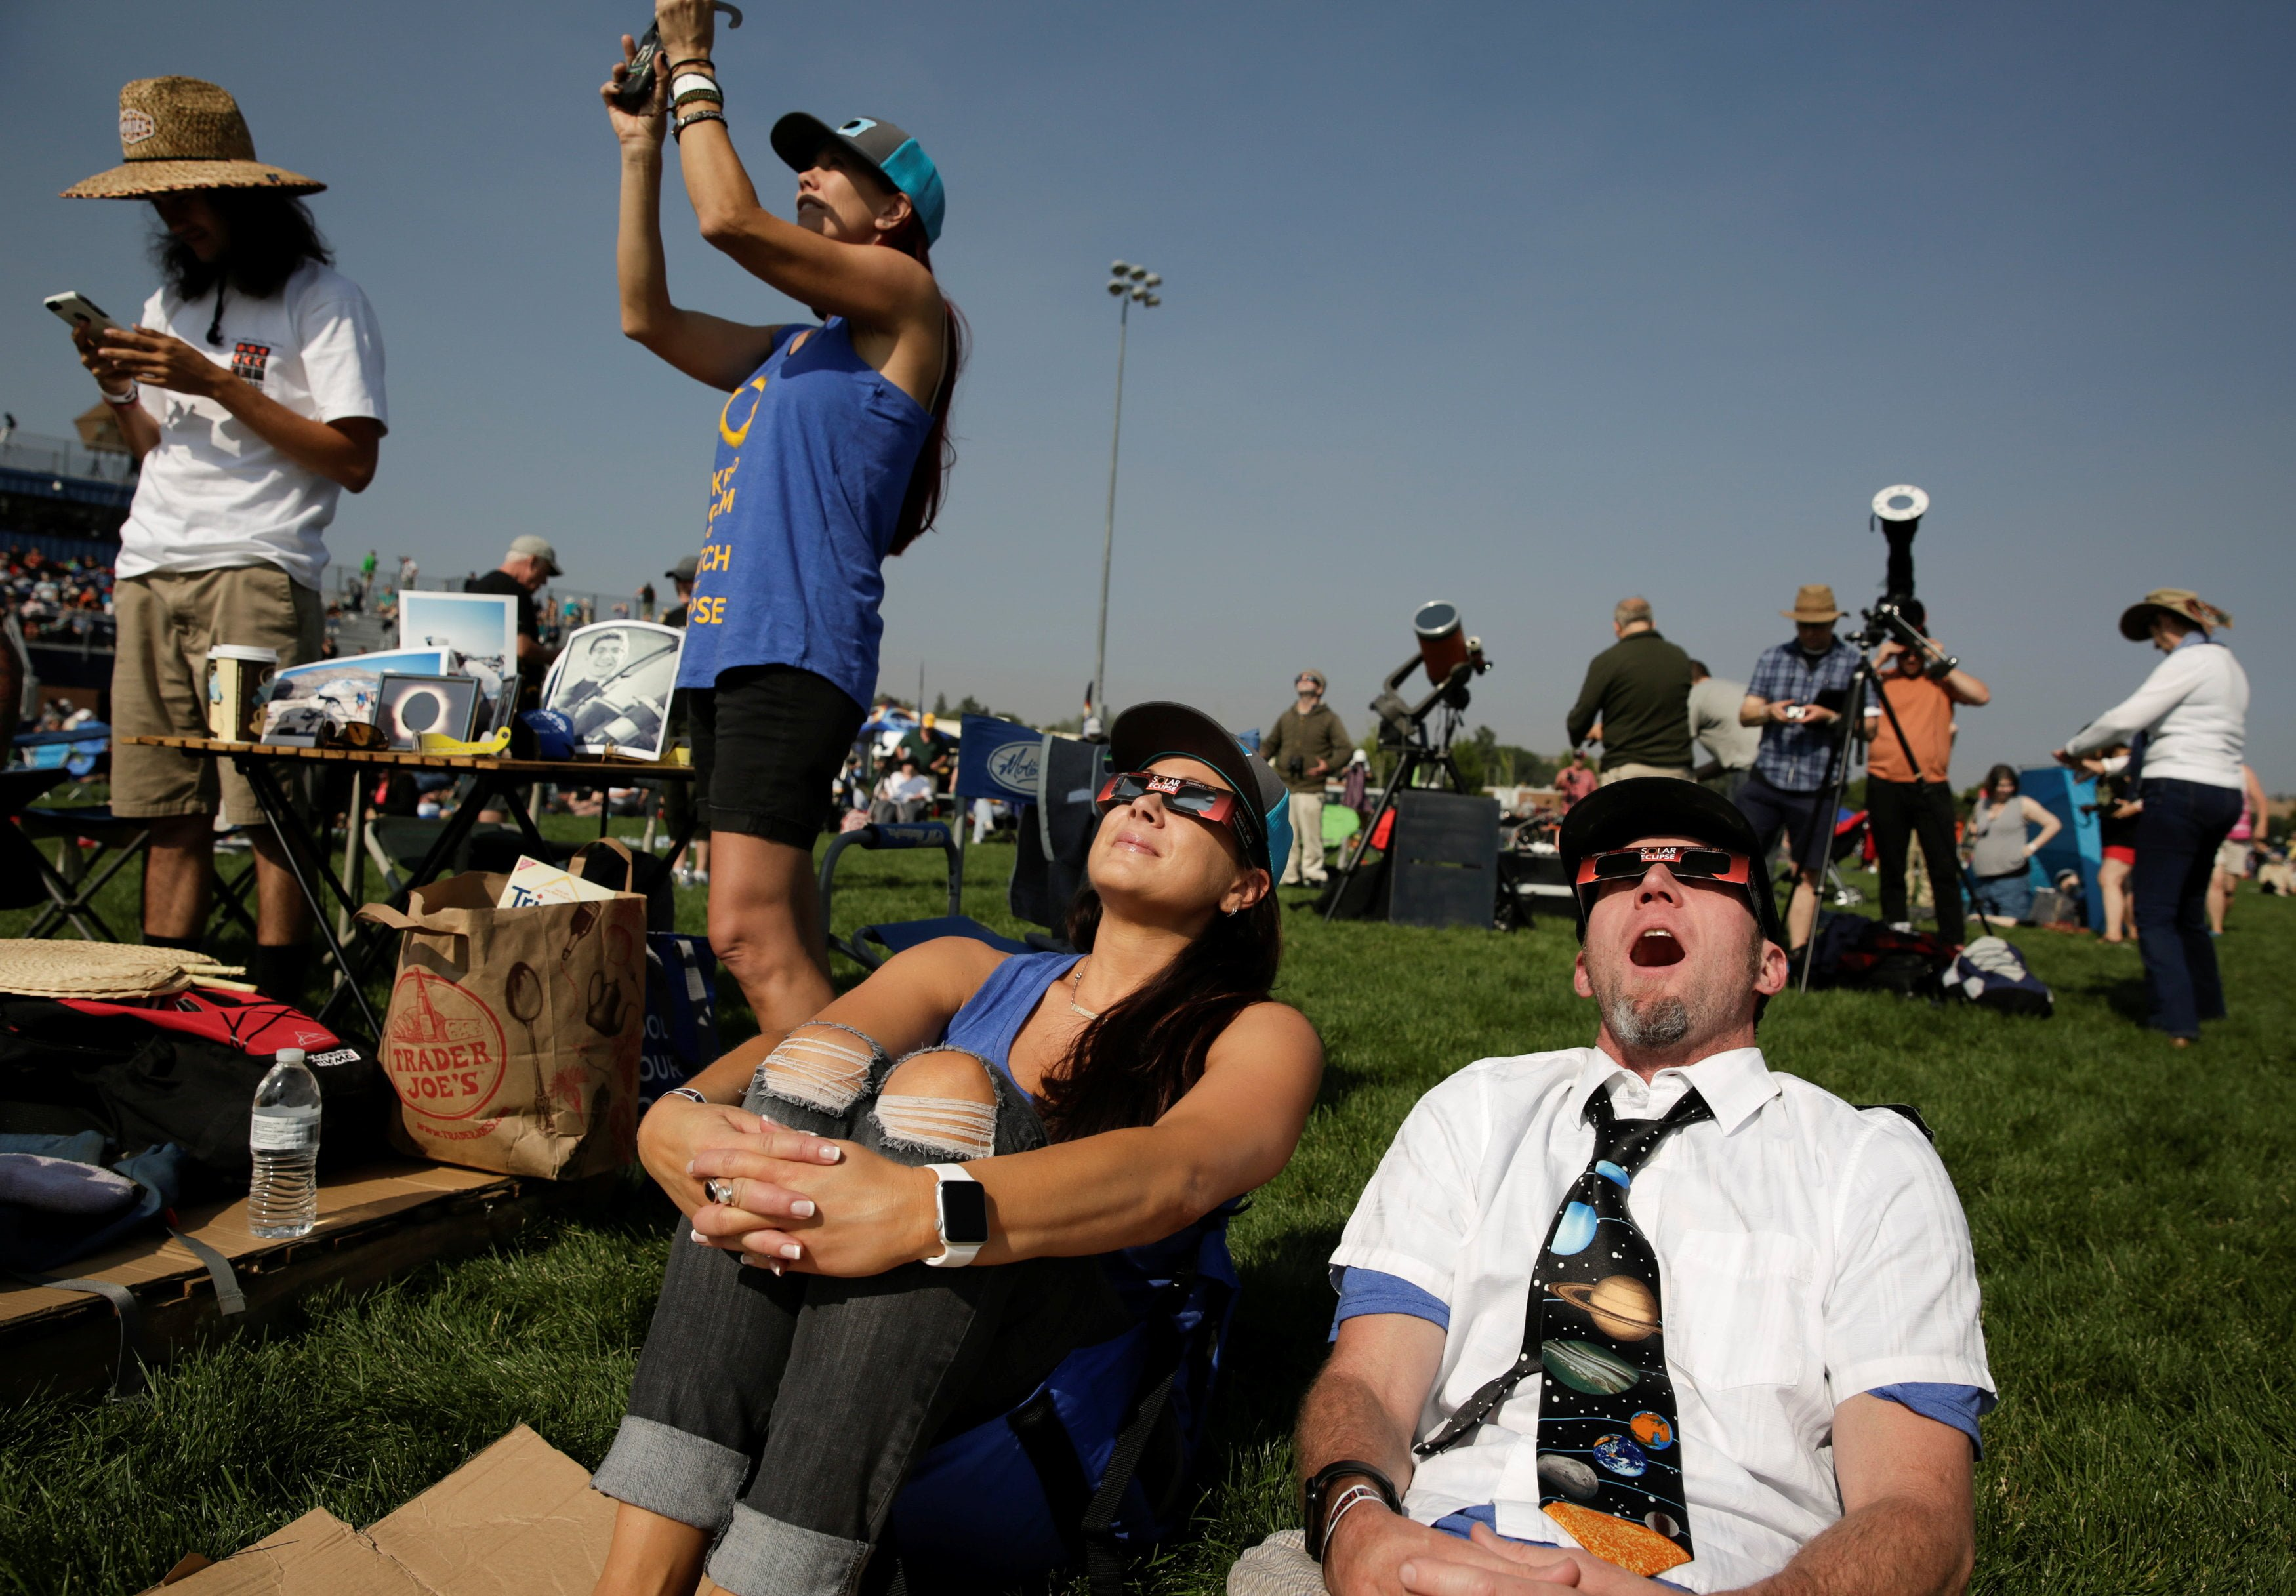 People watch the solar eclipse during the Lowell Observatory Solar Eclipse Experience at Madras High School in Madras, Oregon